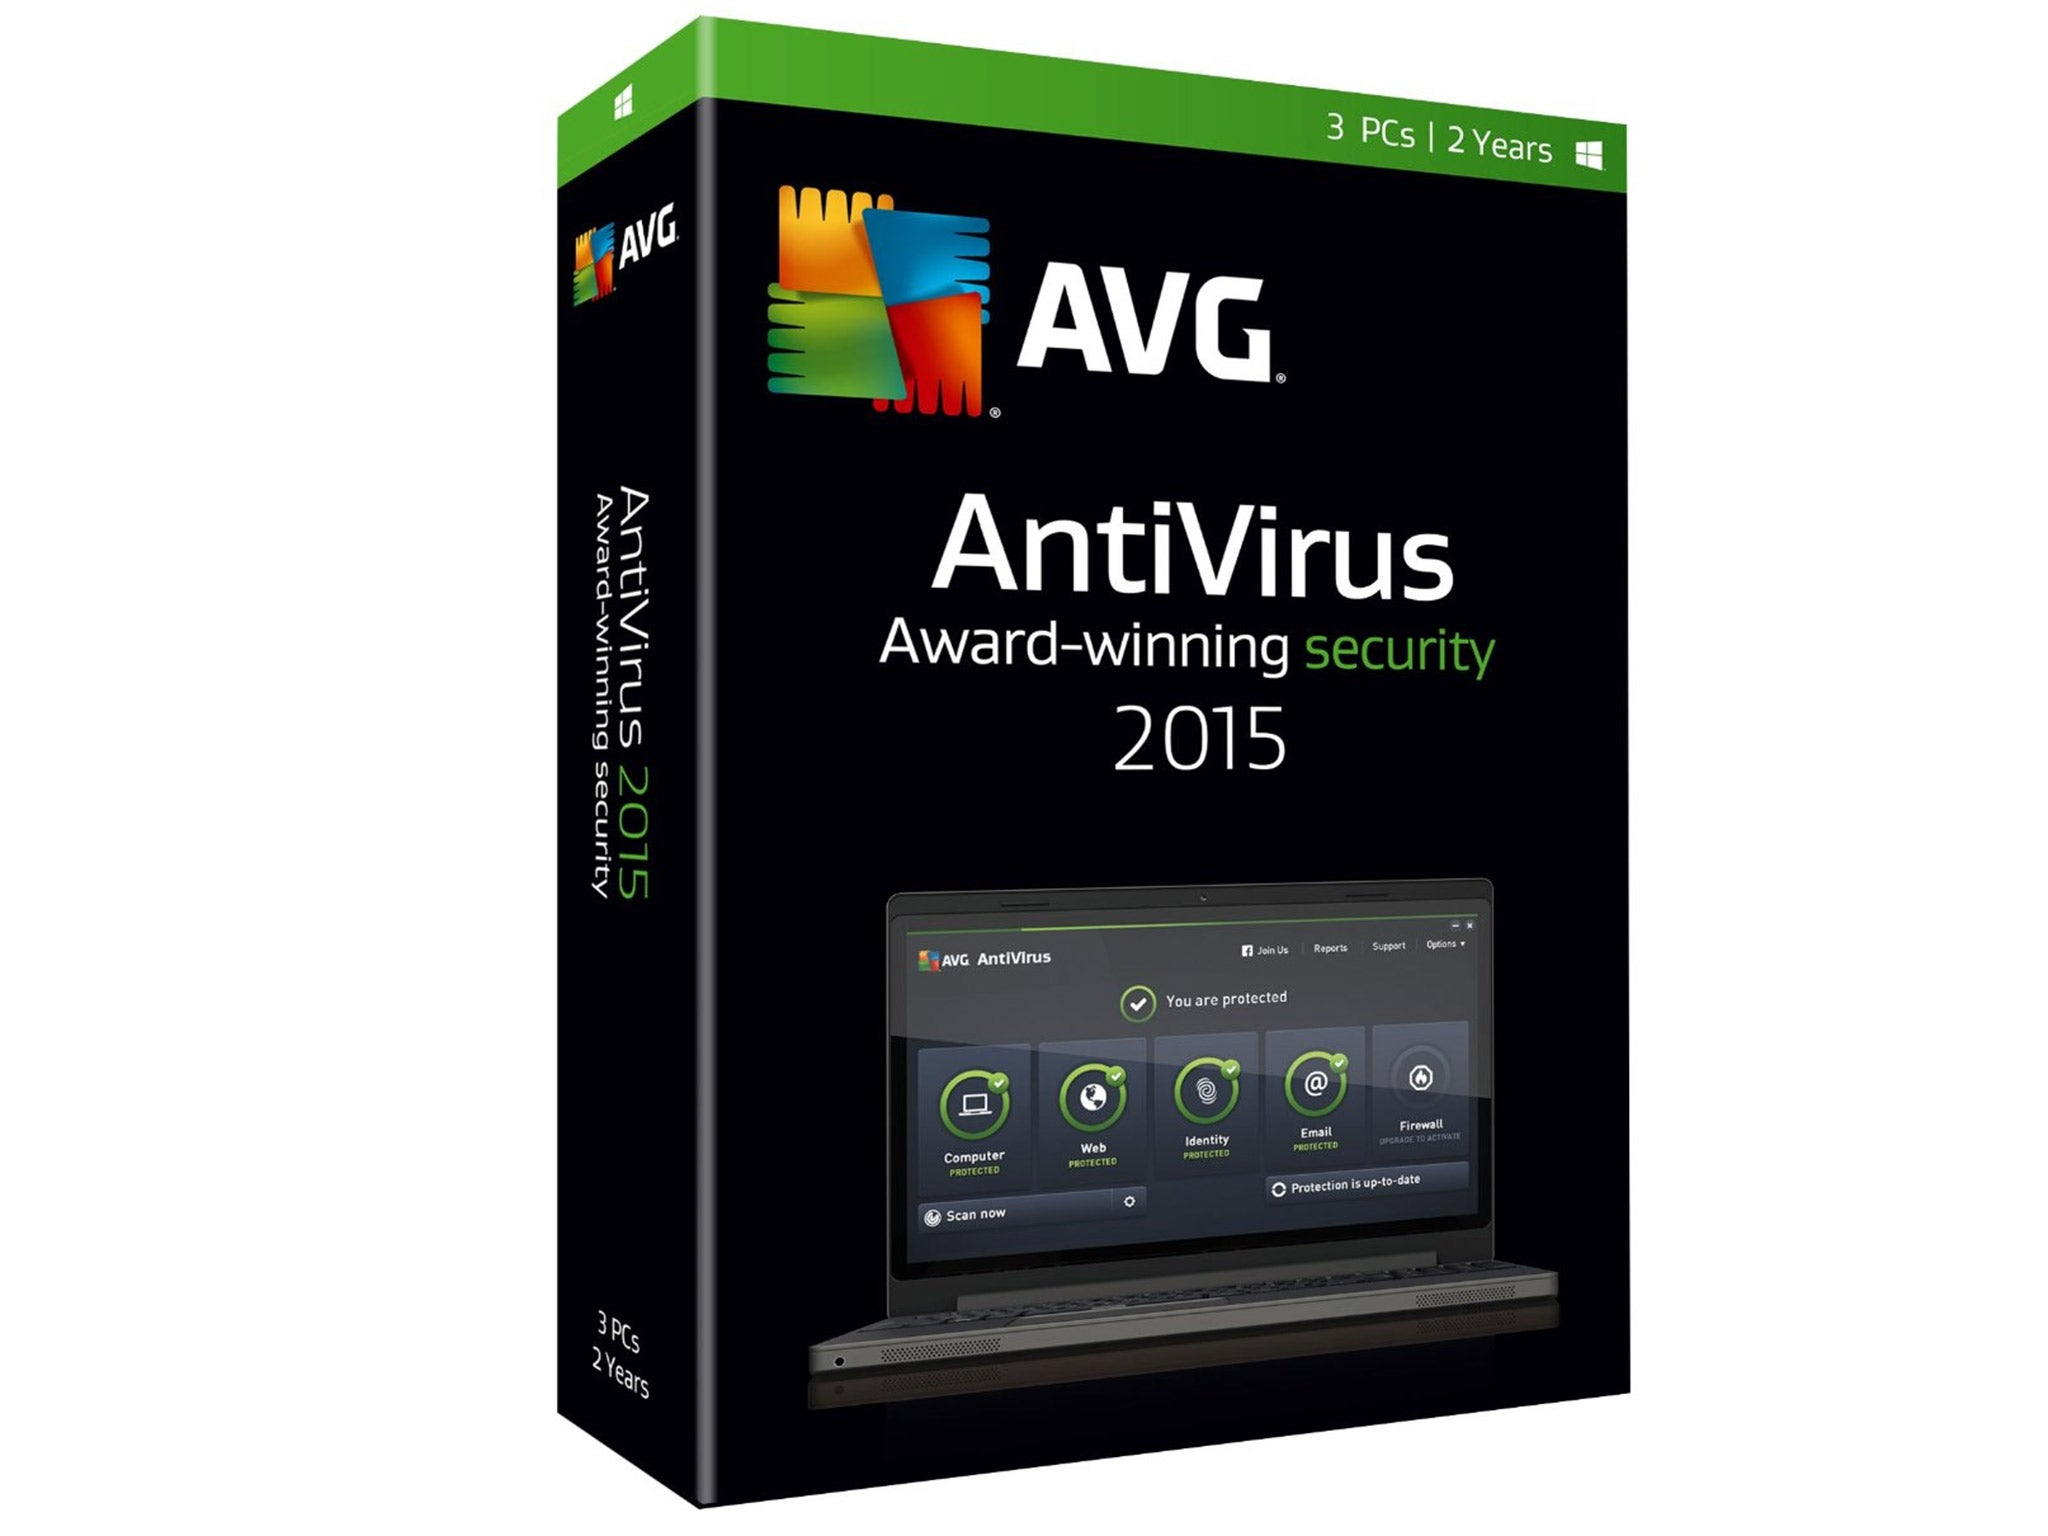 Anti Virus Software If You Use Avgs Free It Will Sell Problems The Computer Has Two Wires One To Control Each Bank These Your Data Independent